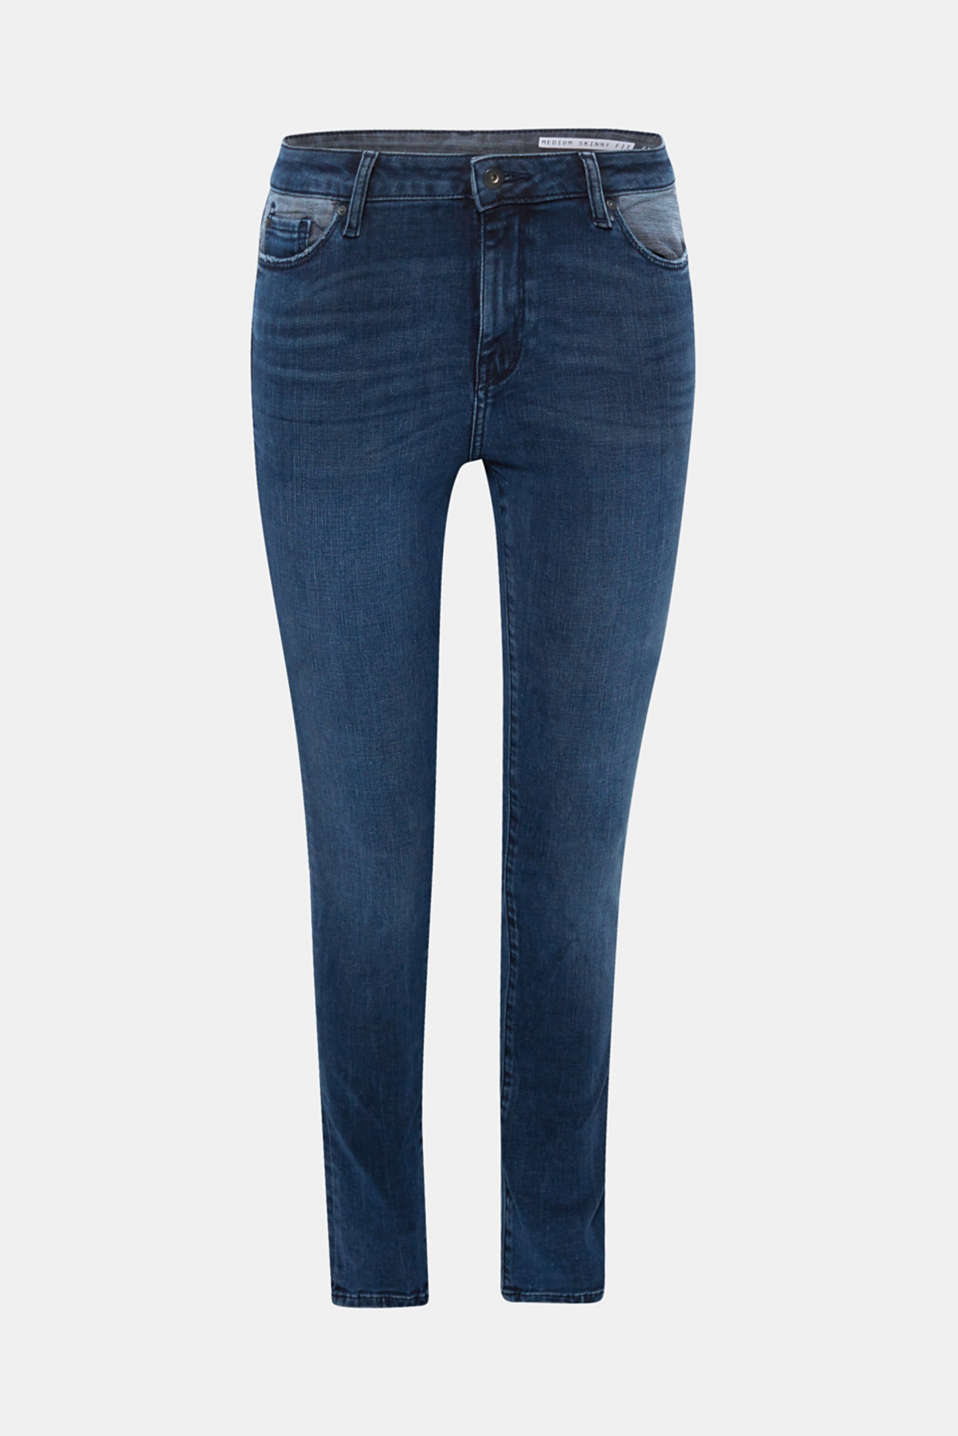 These soft stretch denim jeans feature eye-catching front pockets with pale denim intarsia.